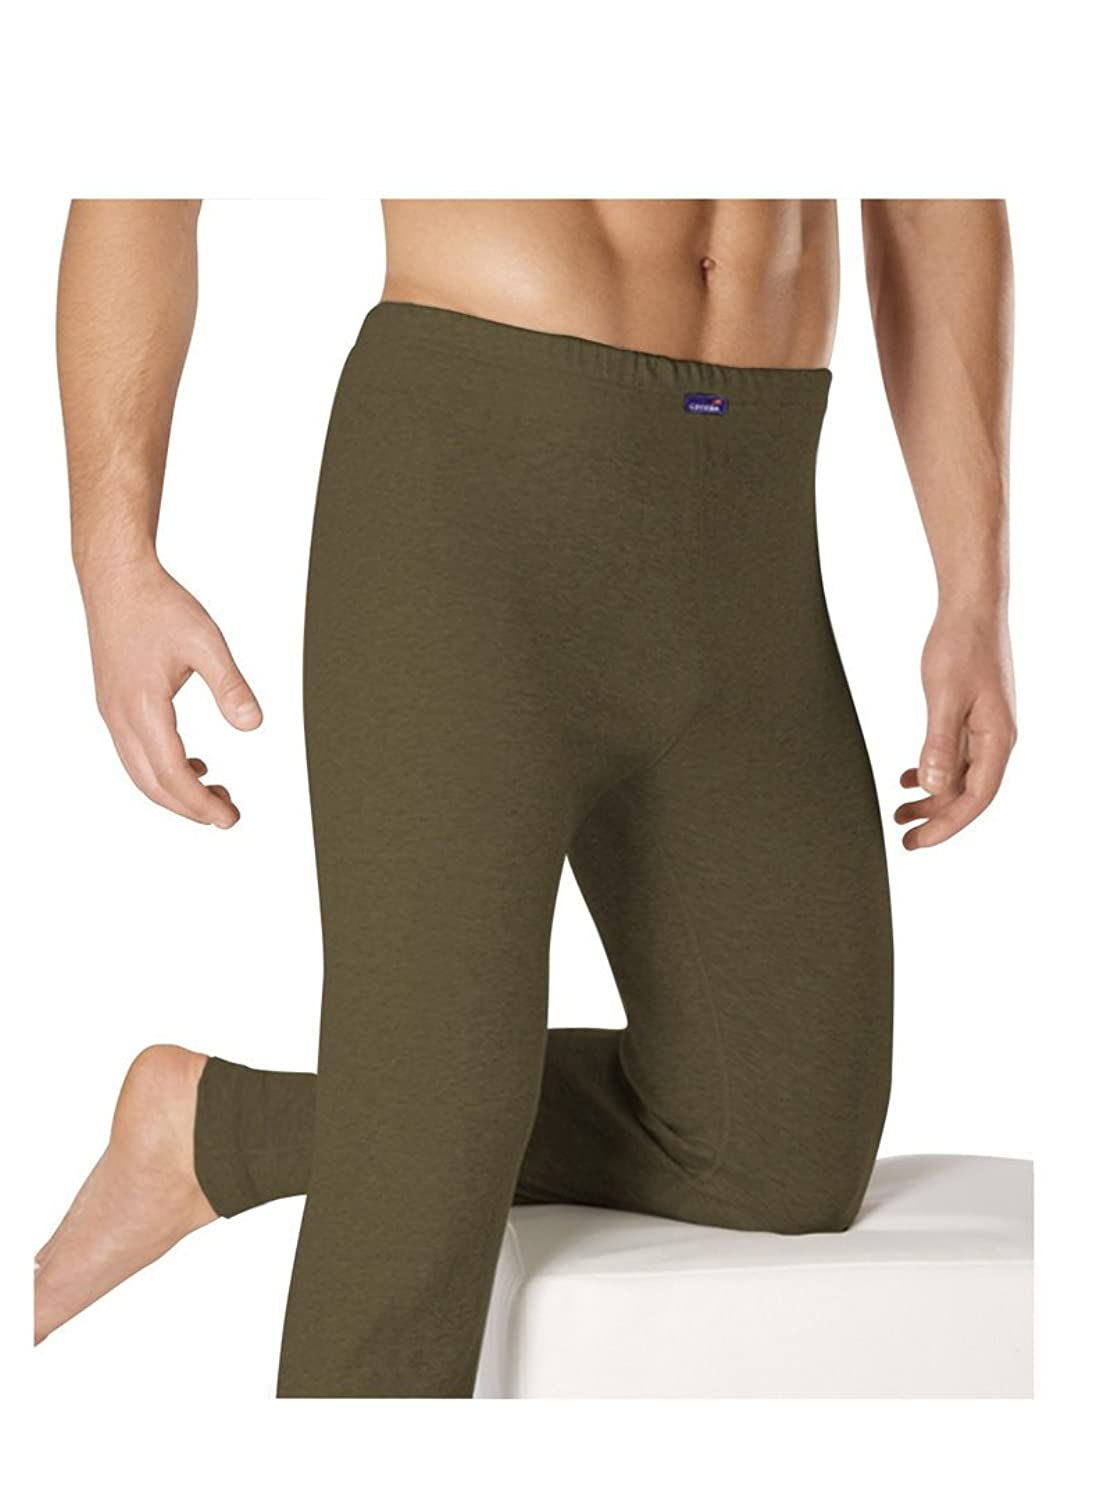 Ceceba 10028 Thermo Function Long John 4er Pack - Navy, Grey Melange, Olive - M bis 2XL